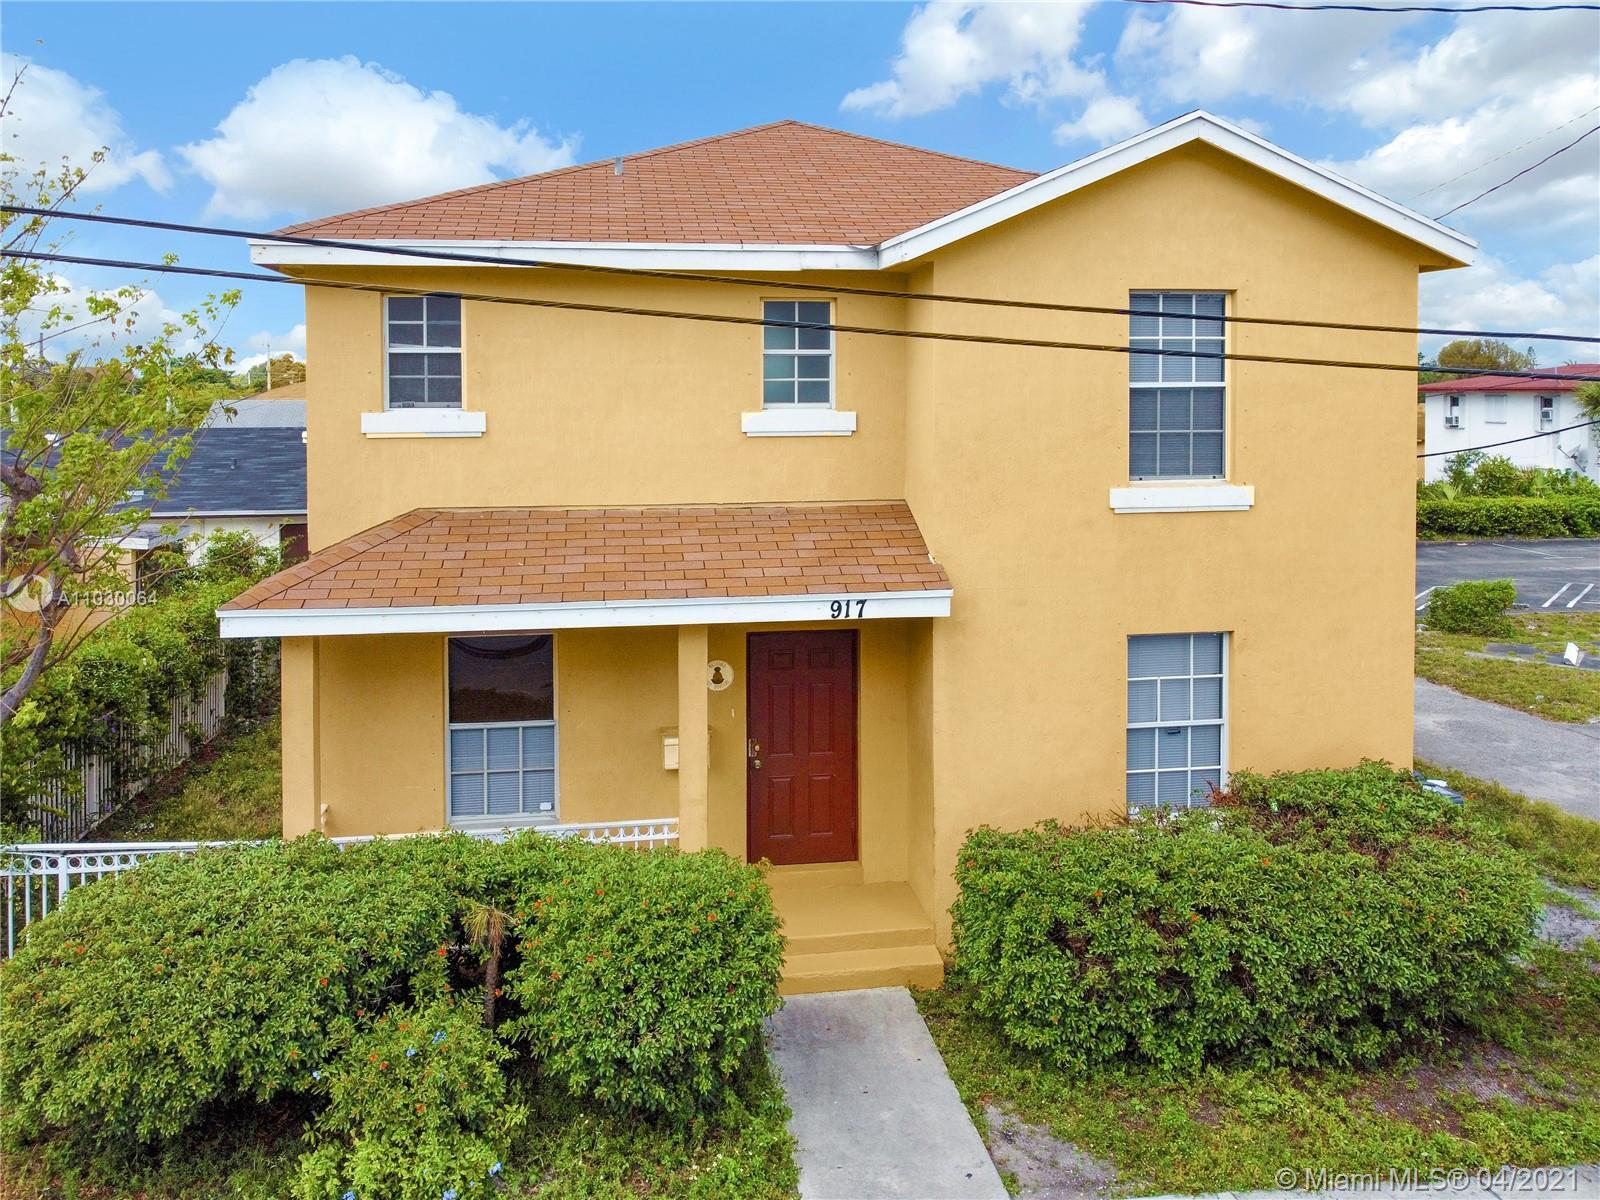 MUST SEE! BUYER FINANCE FELT THRU.  newer construction in the History district of West Palm Beach. N